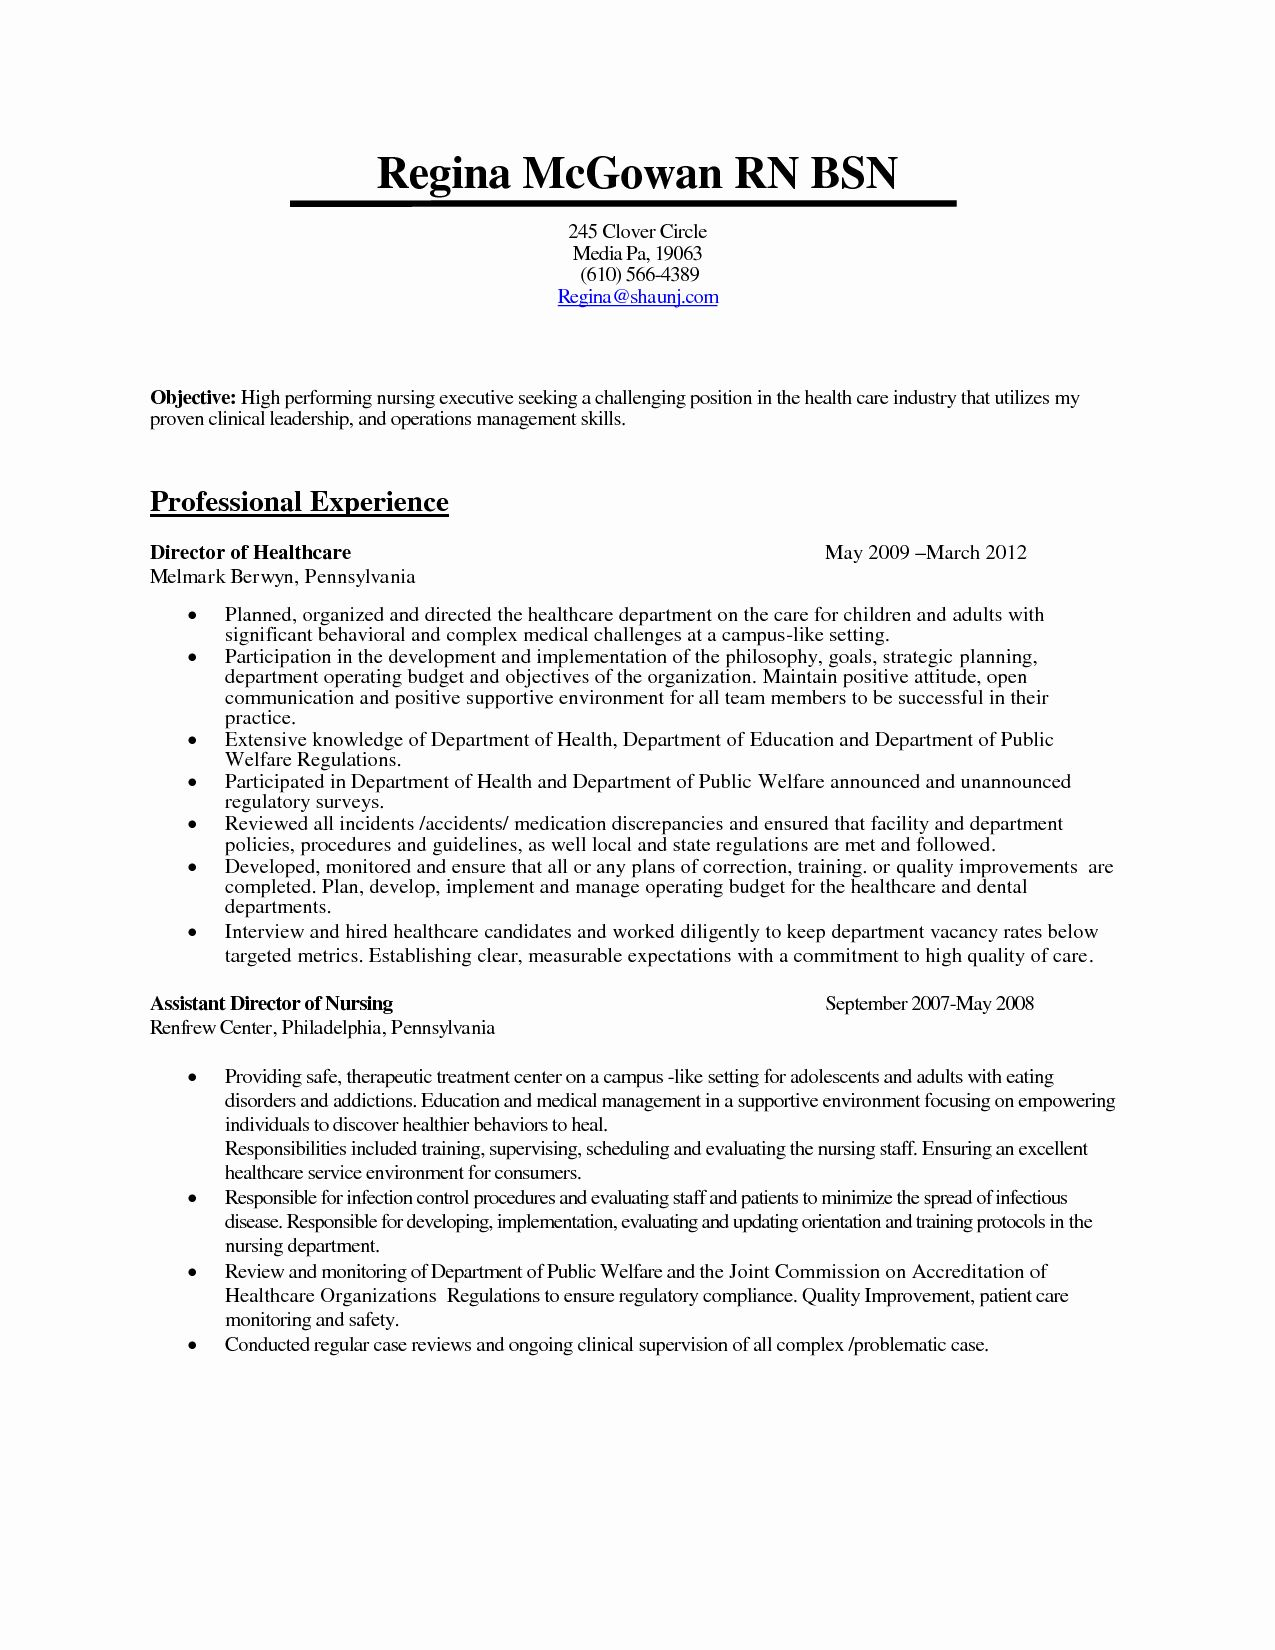 Emergency Room Nurse Resume Beautiful 10 Emergency Room Nurse Skills Resume